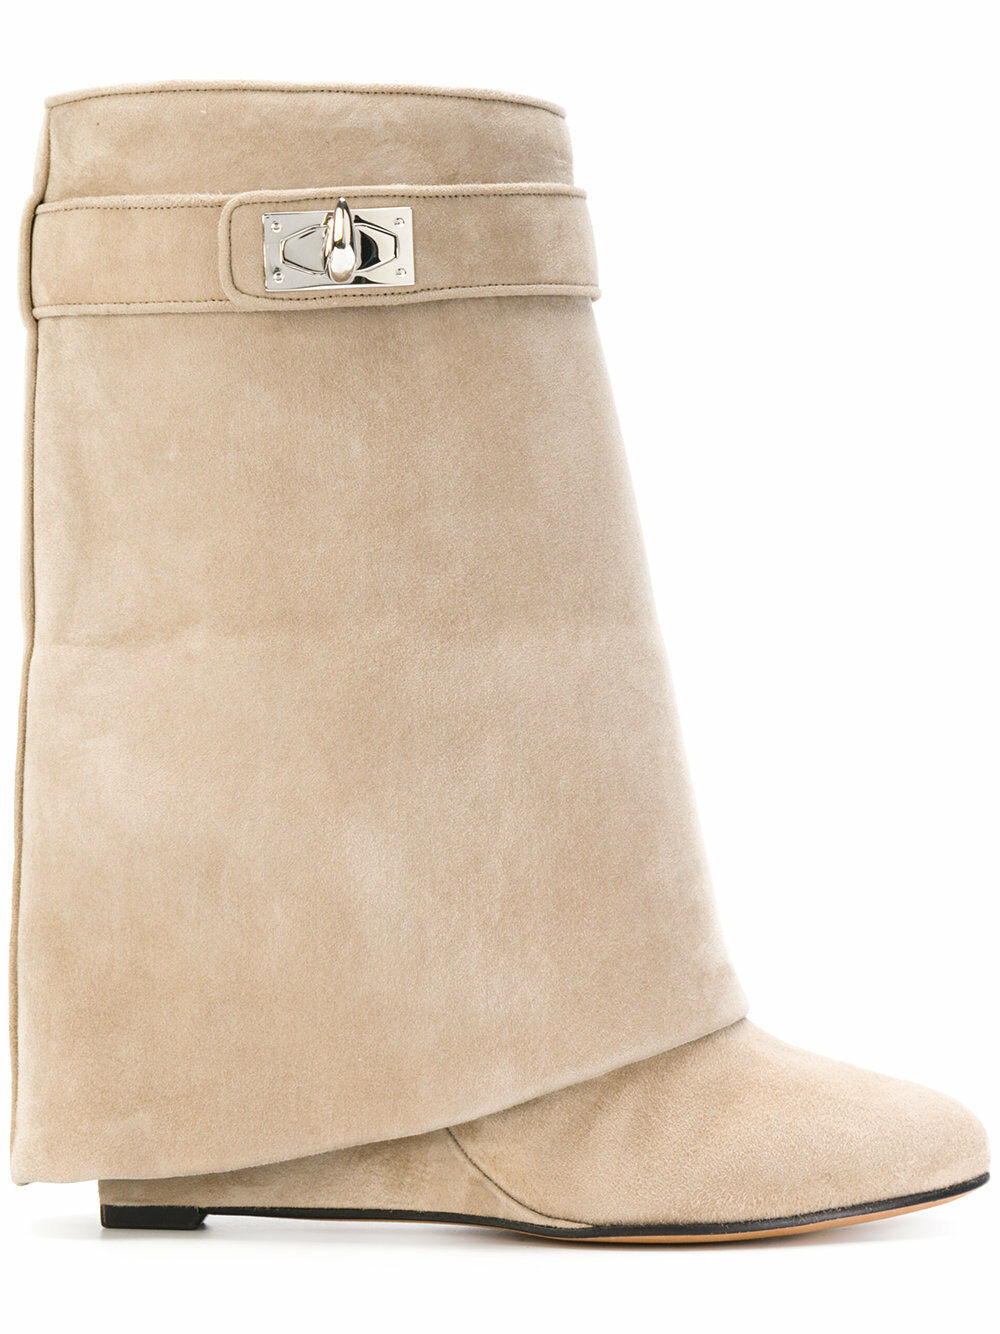 NIB Givenchy Beige Camel Suede Shark Tooth Lock Foldover Wedge Heel démarrage chaussures 38